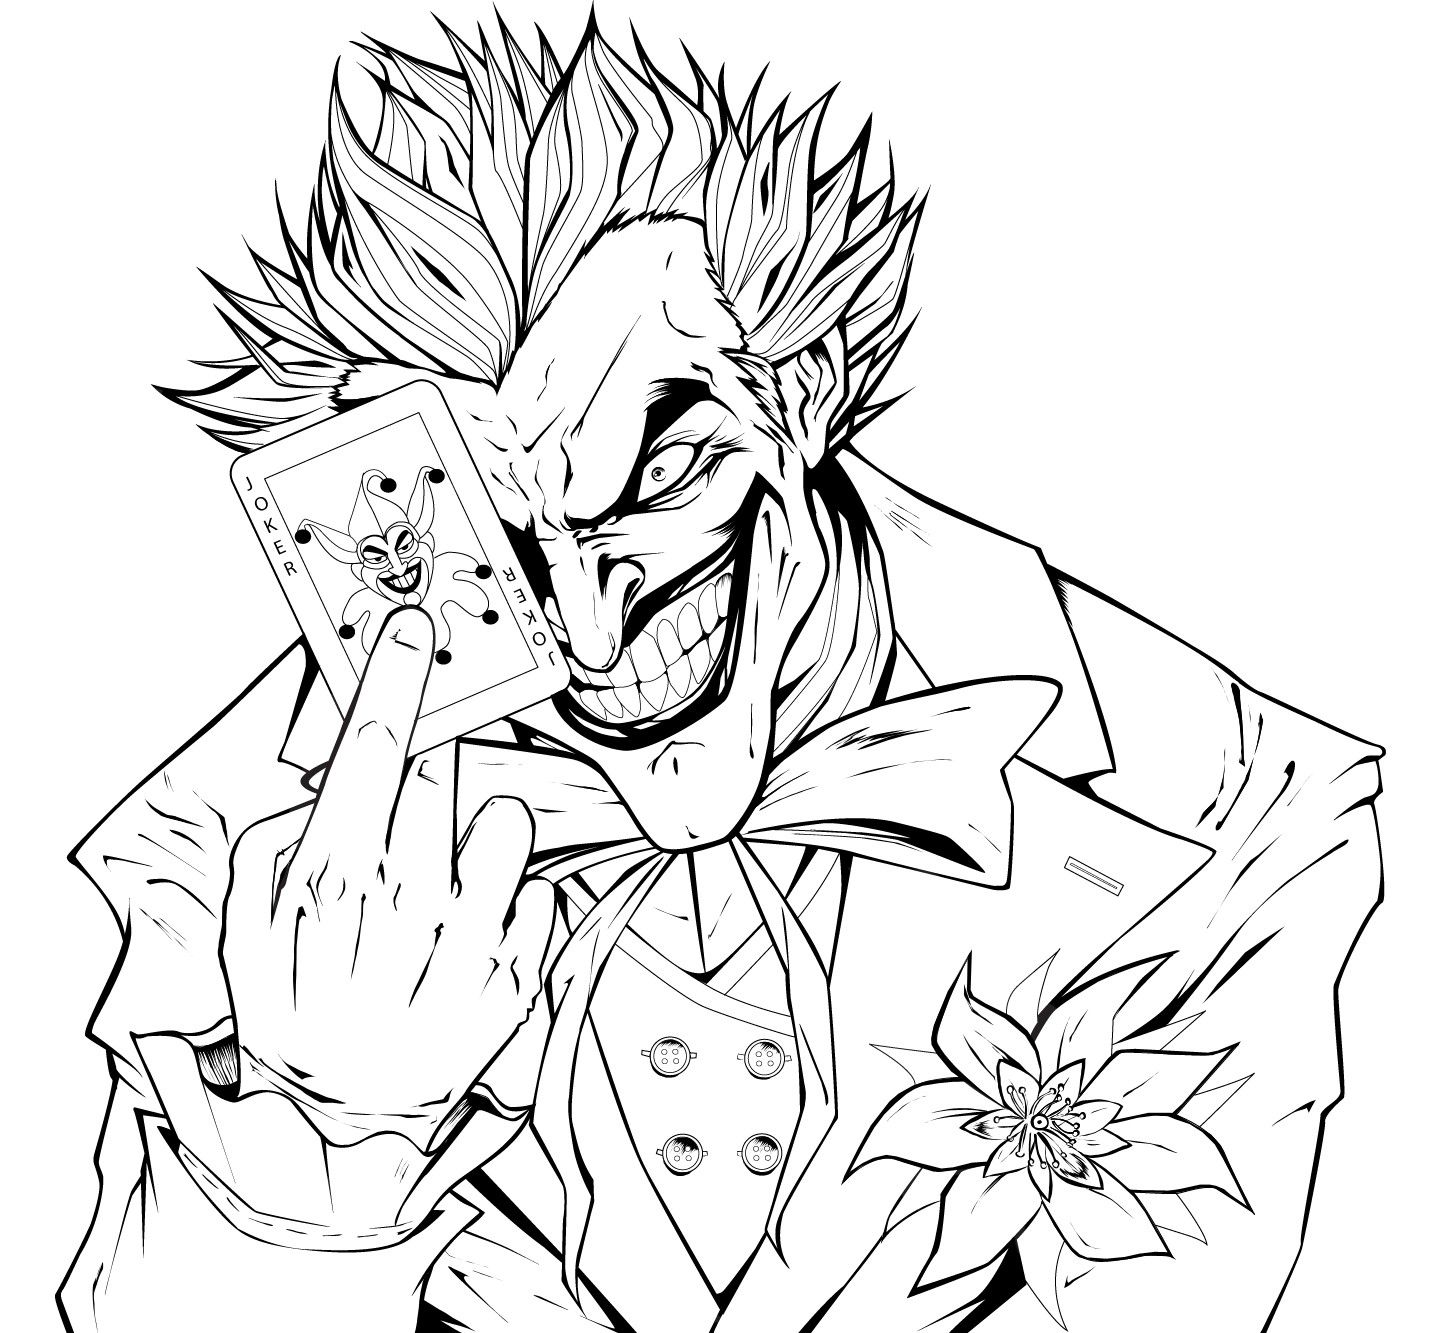 Batman colouring in online - Joker Coloring Pages Printable My Image Sense